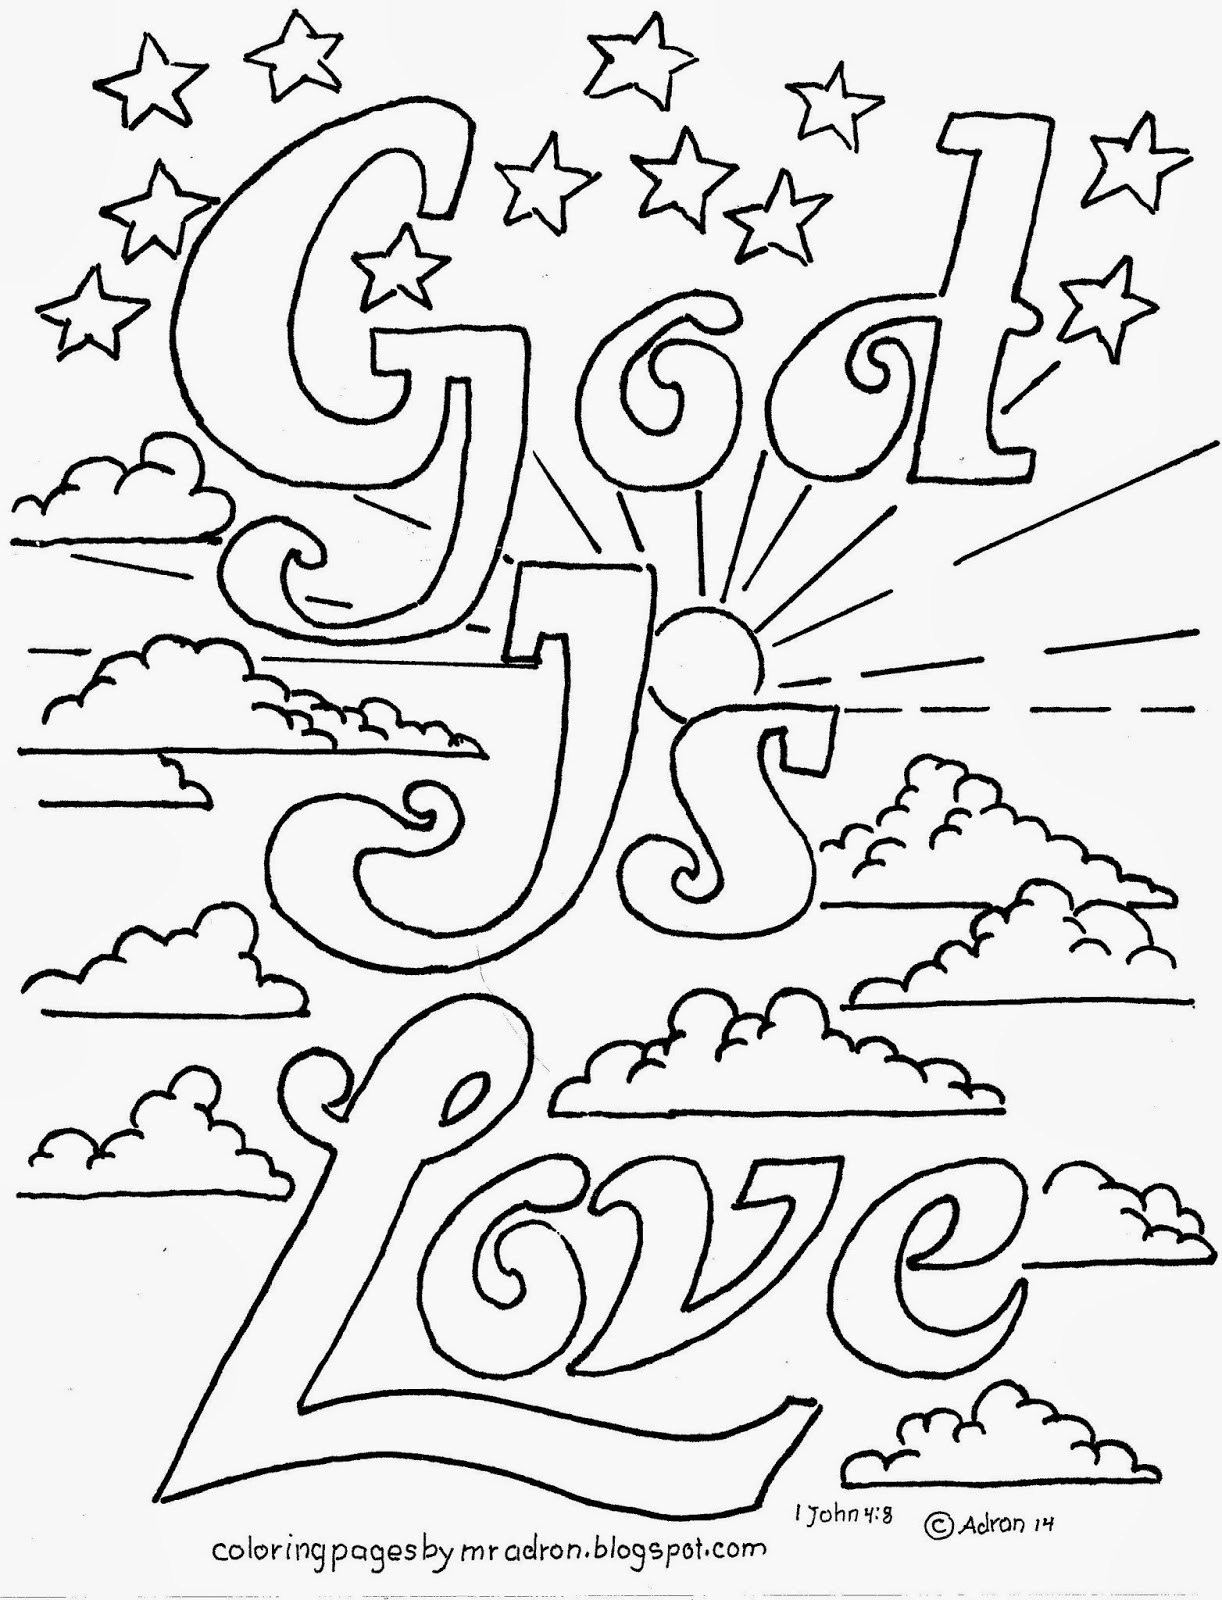 love bible verses coloring pages - photo#18